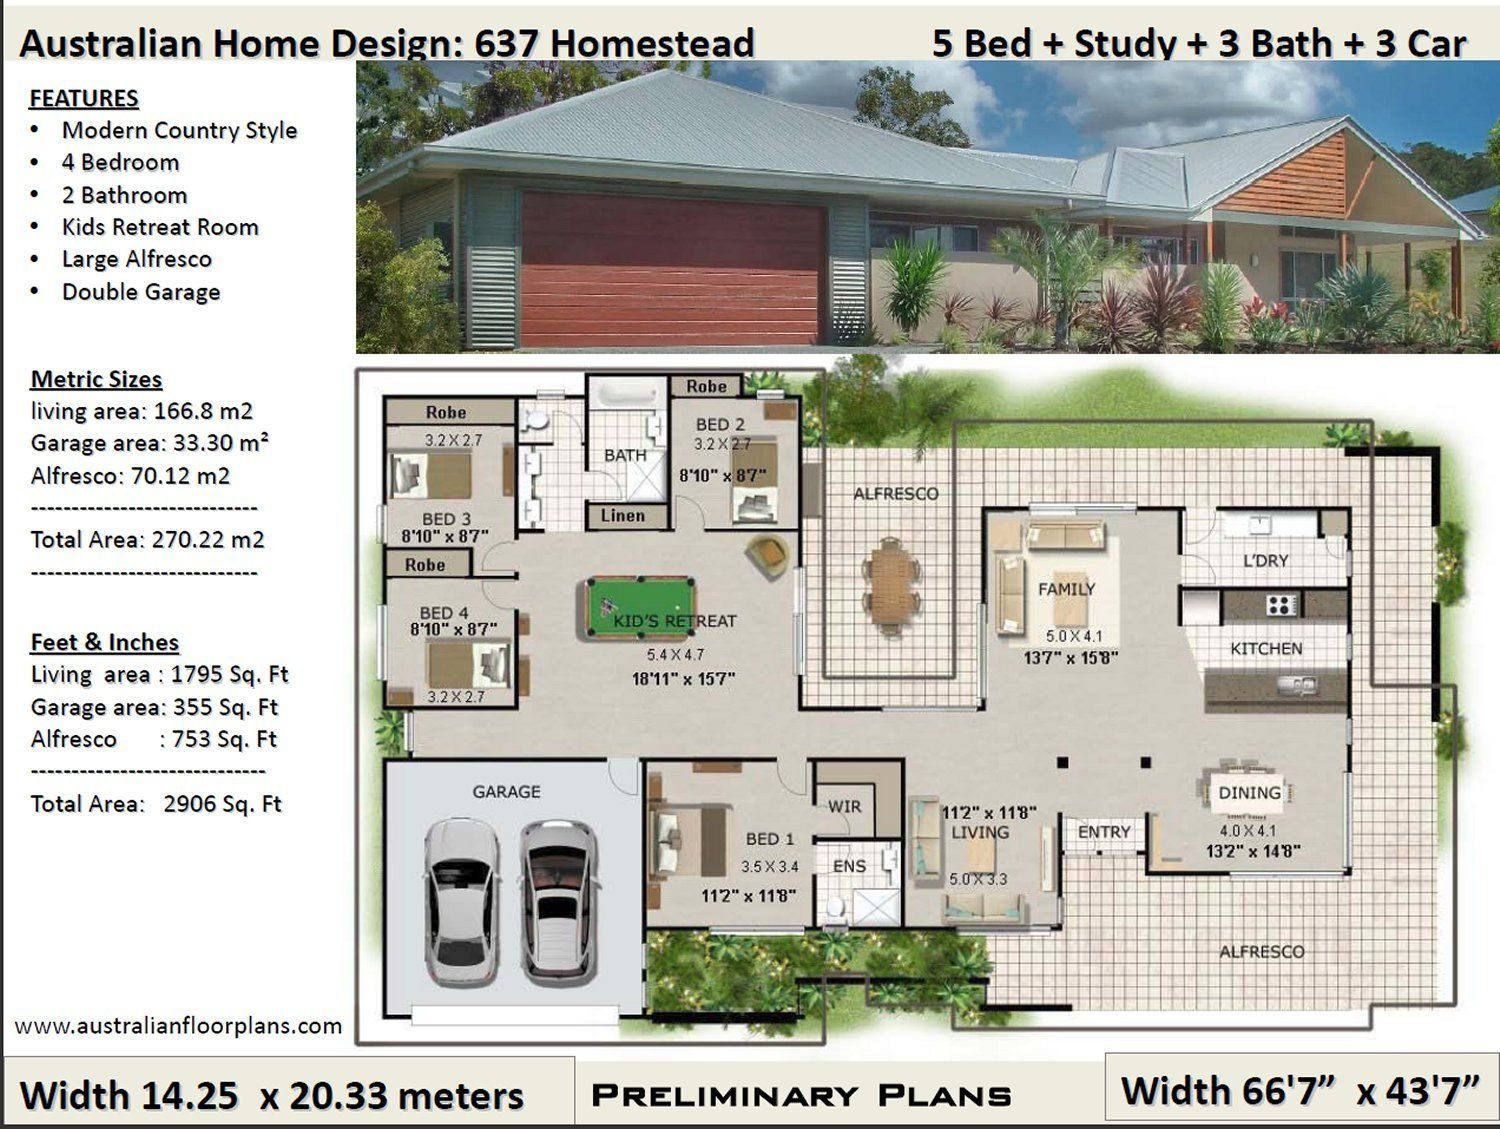 270m2 2906 Sq Ft 4 Bed Acreage Style 4 Bedroom House Etsy Country Style House Plans House Plans Australia Colonial House Plans